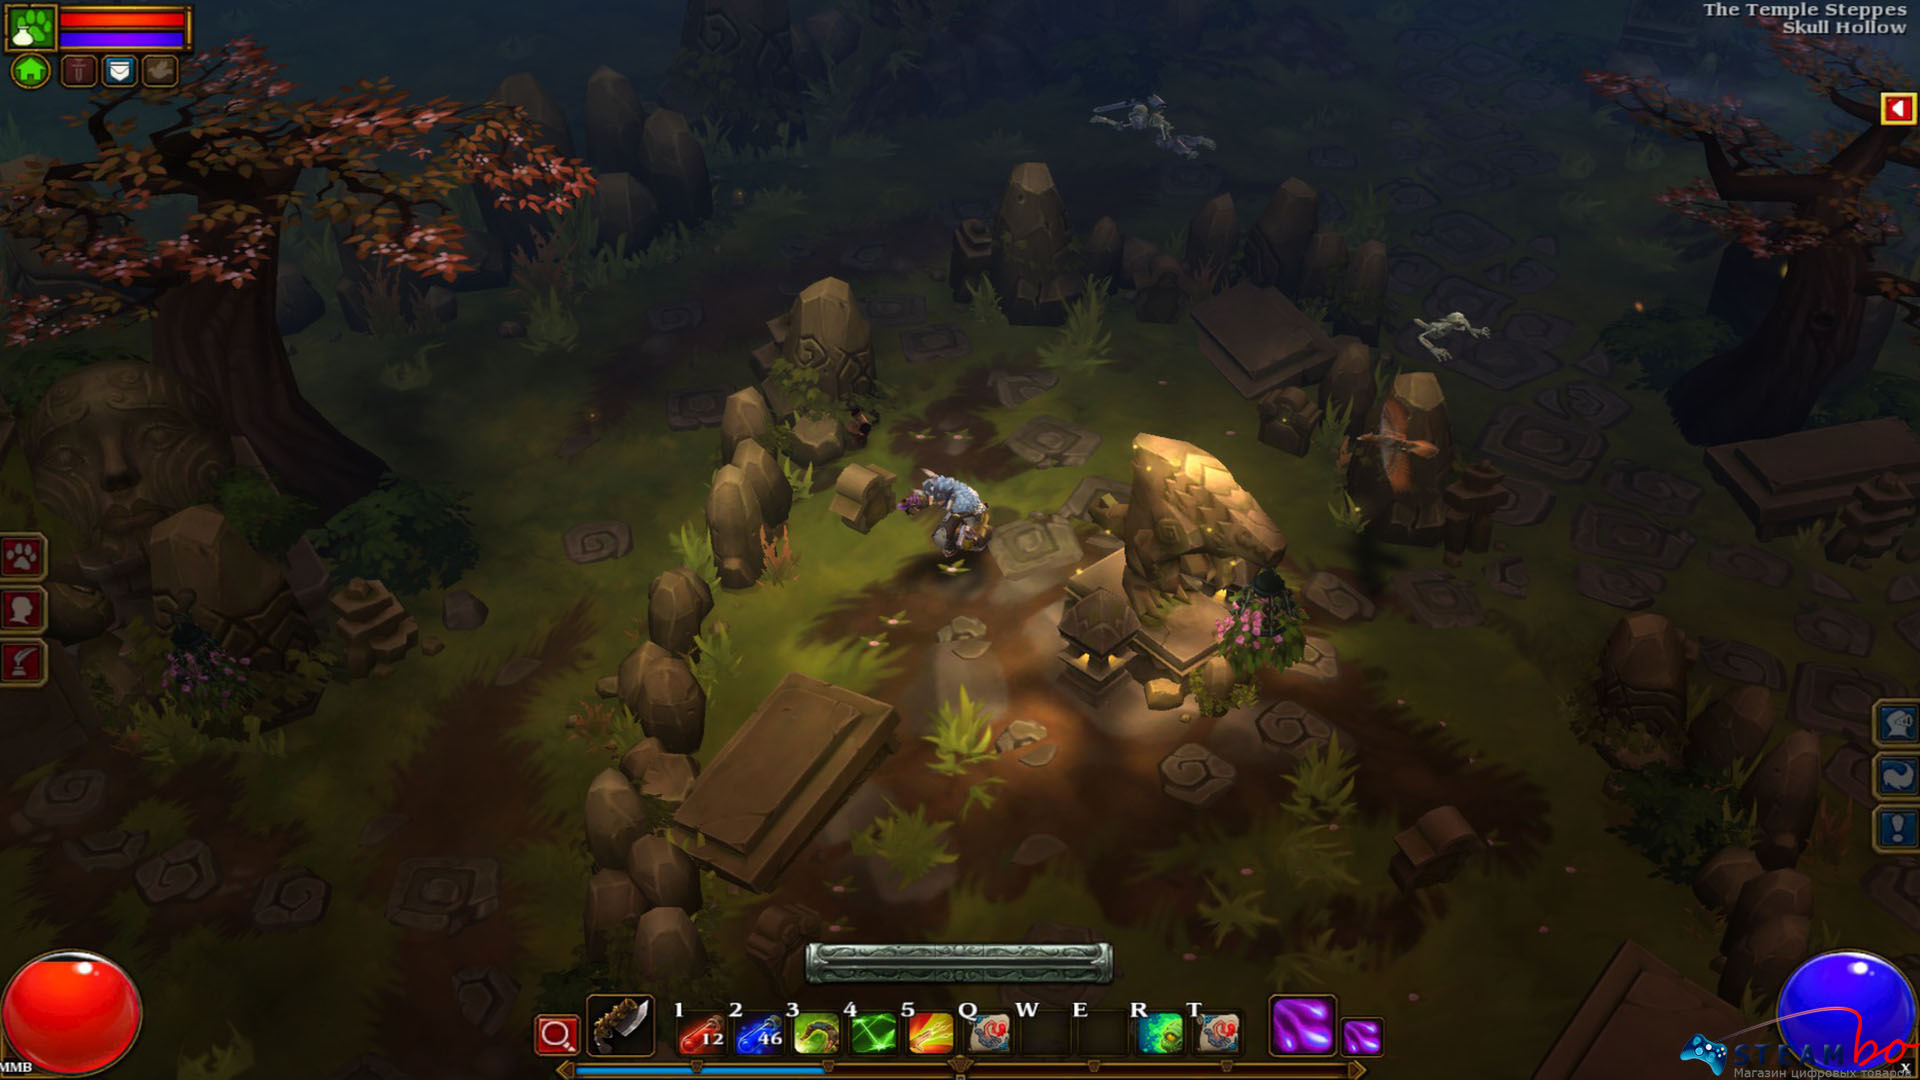 Torchlight II Region Free (Steam Gift/Key)